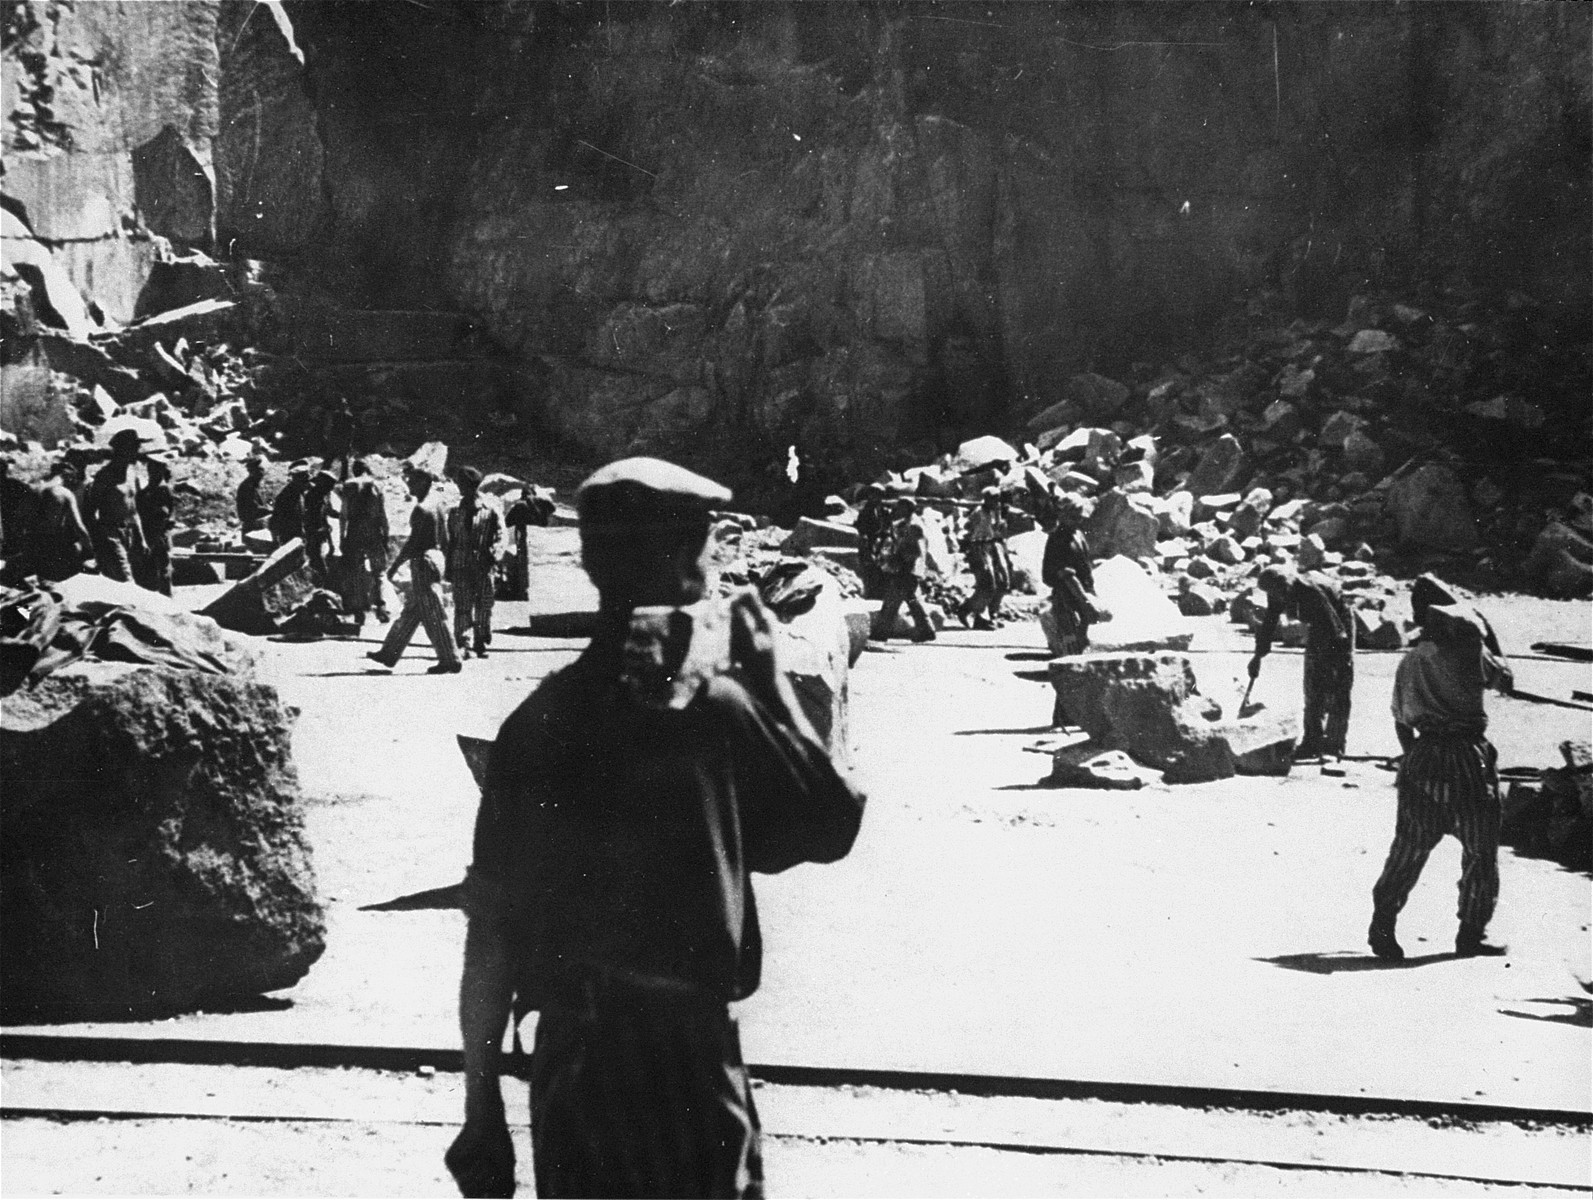 Prisoners at forced labor in the Wiener Graben quarry at the Mauthausen concentration camp.